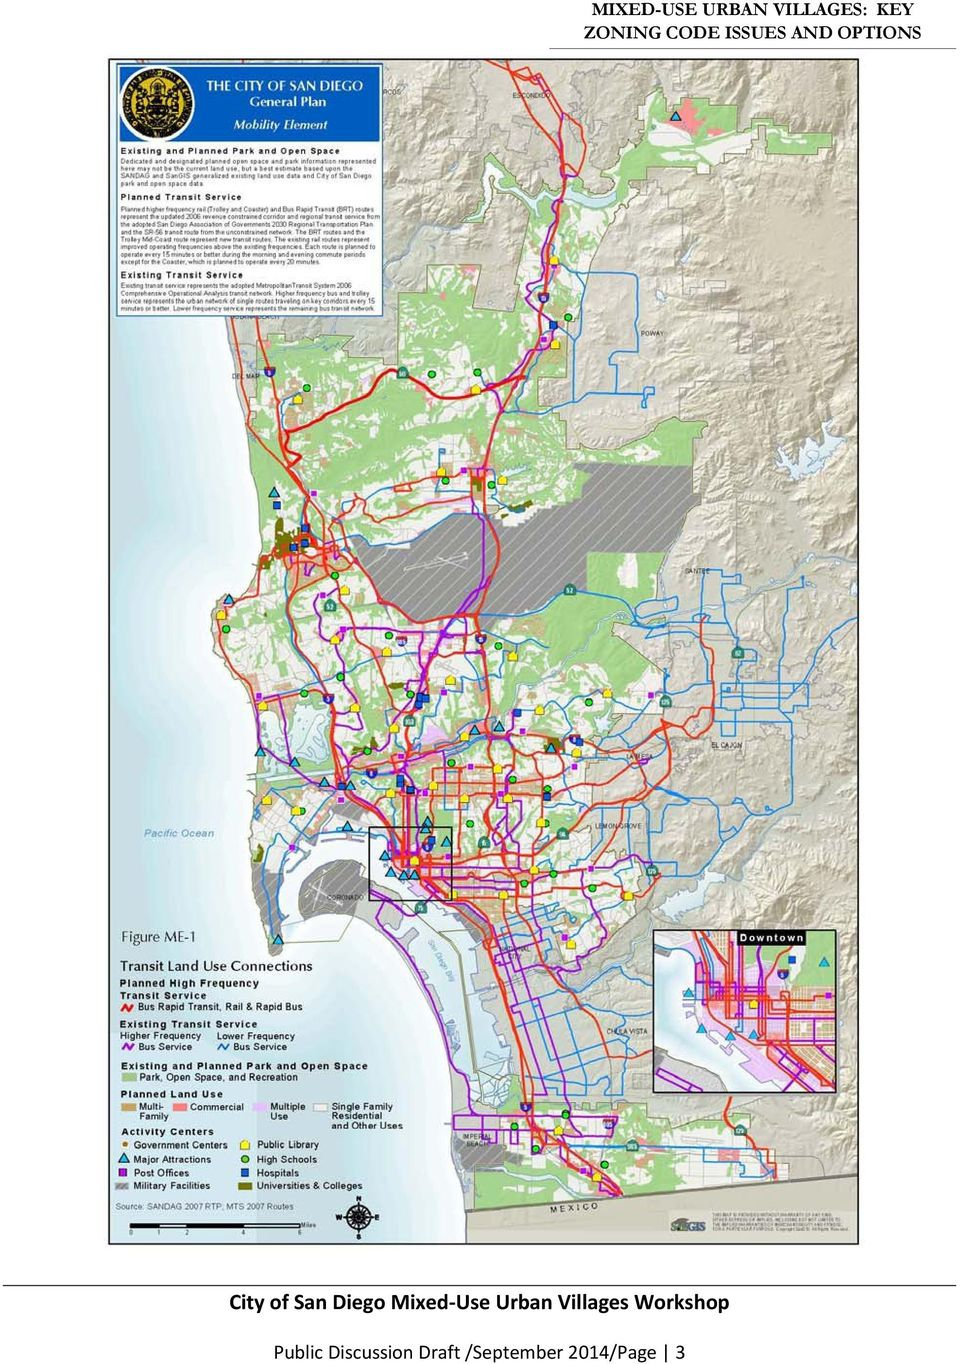 SAN DIEGO MIXED USE URBAN VILLAGES: KEY ZONING CODE ISSUES